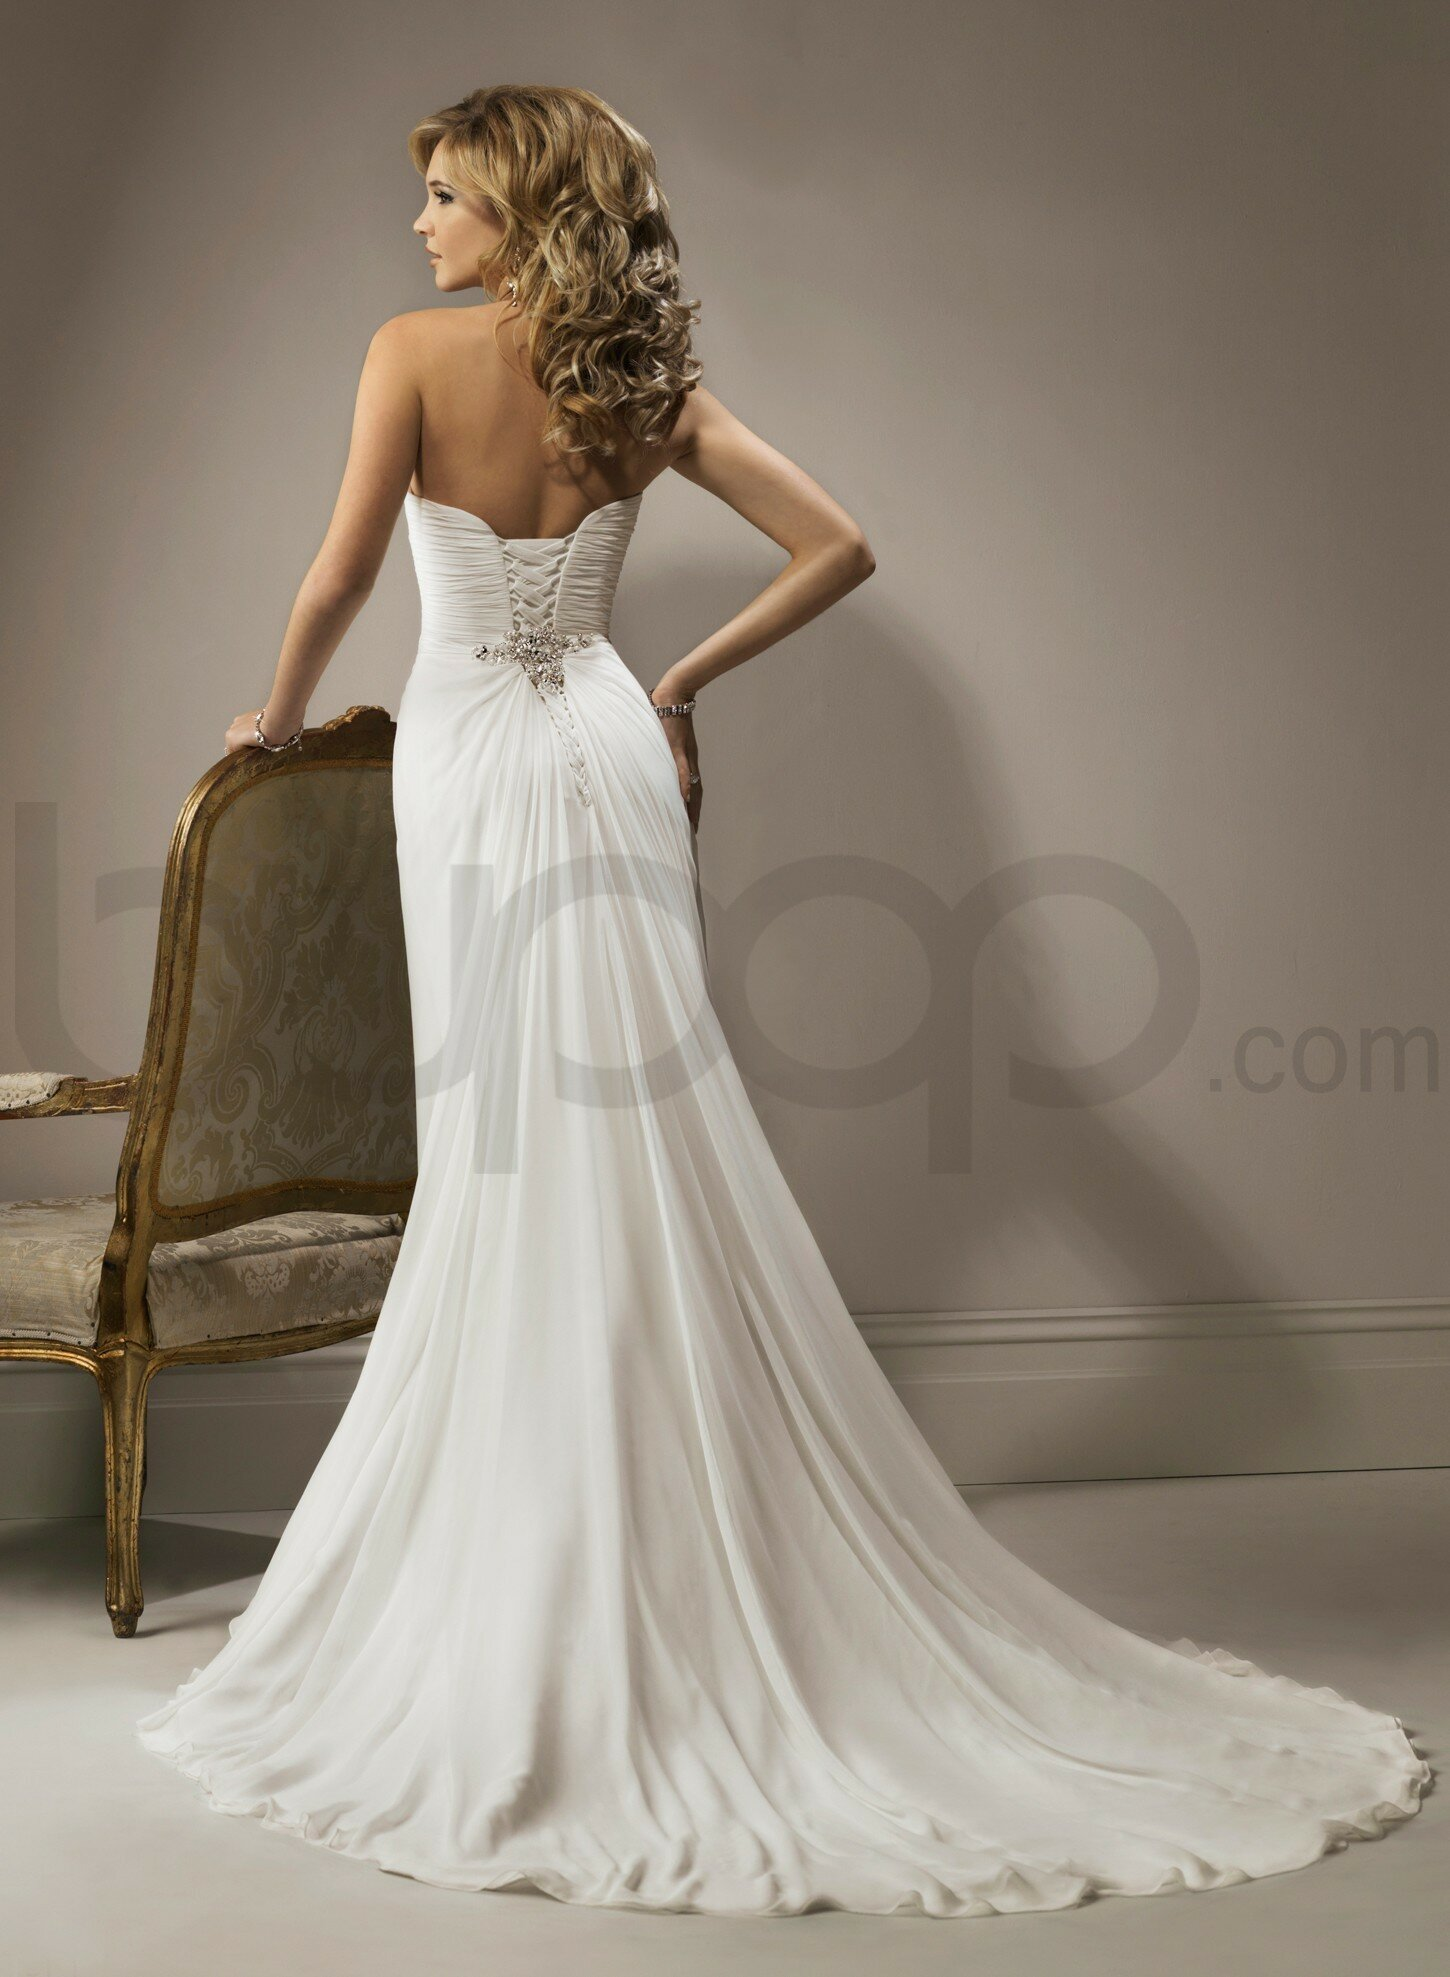 Browse Wedding Dresses Line Sweetheart Wedding Dresses Photo 1 Browse Pictures And High